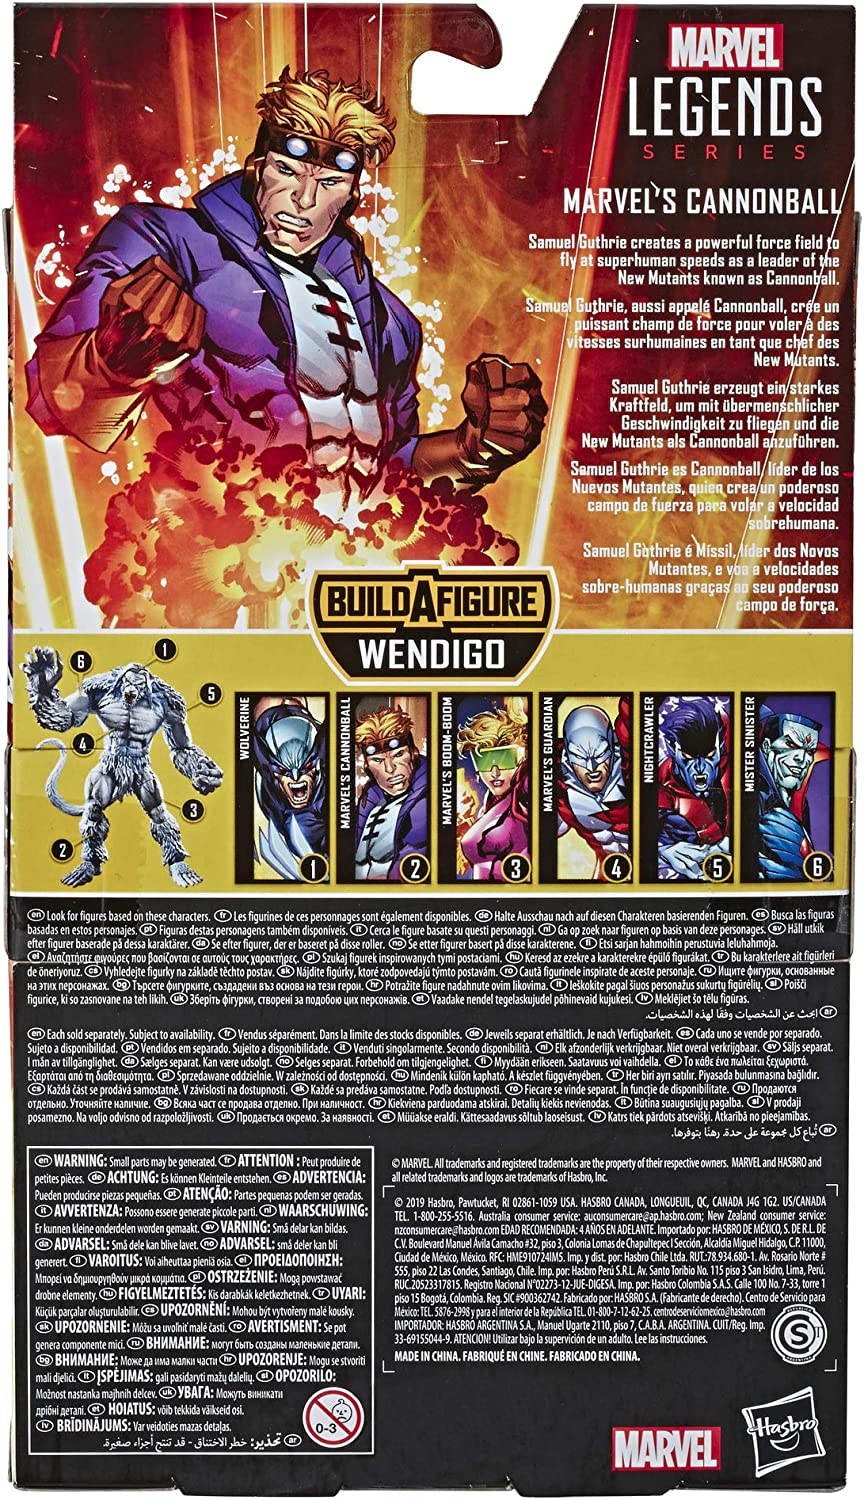 X-Men//X-Force Collection Marvel Hasbro Legends Series 6 Collectible Action Figure Guardian Toy with Wendigo Build-A-Figure Part